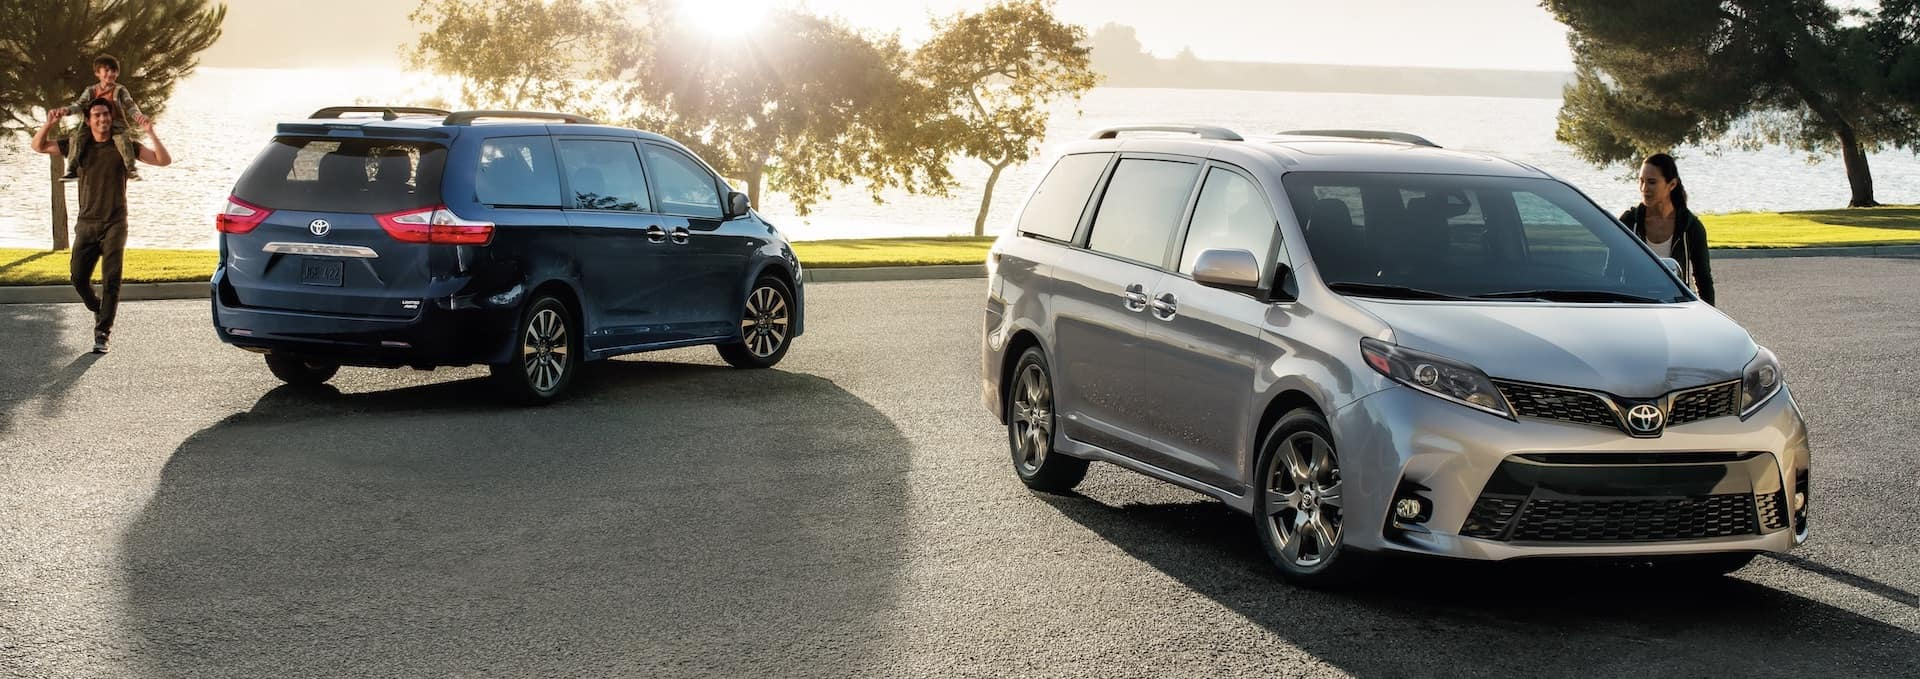 Compare the Toyota Sienna with the Honda Odyssey at Lancaster Toyota of East Petersburg | 2021 Toyota Siennas parked in the sunlight